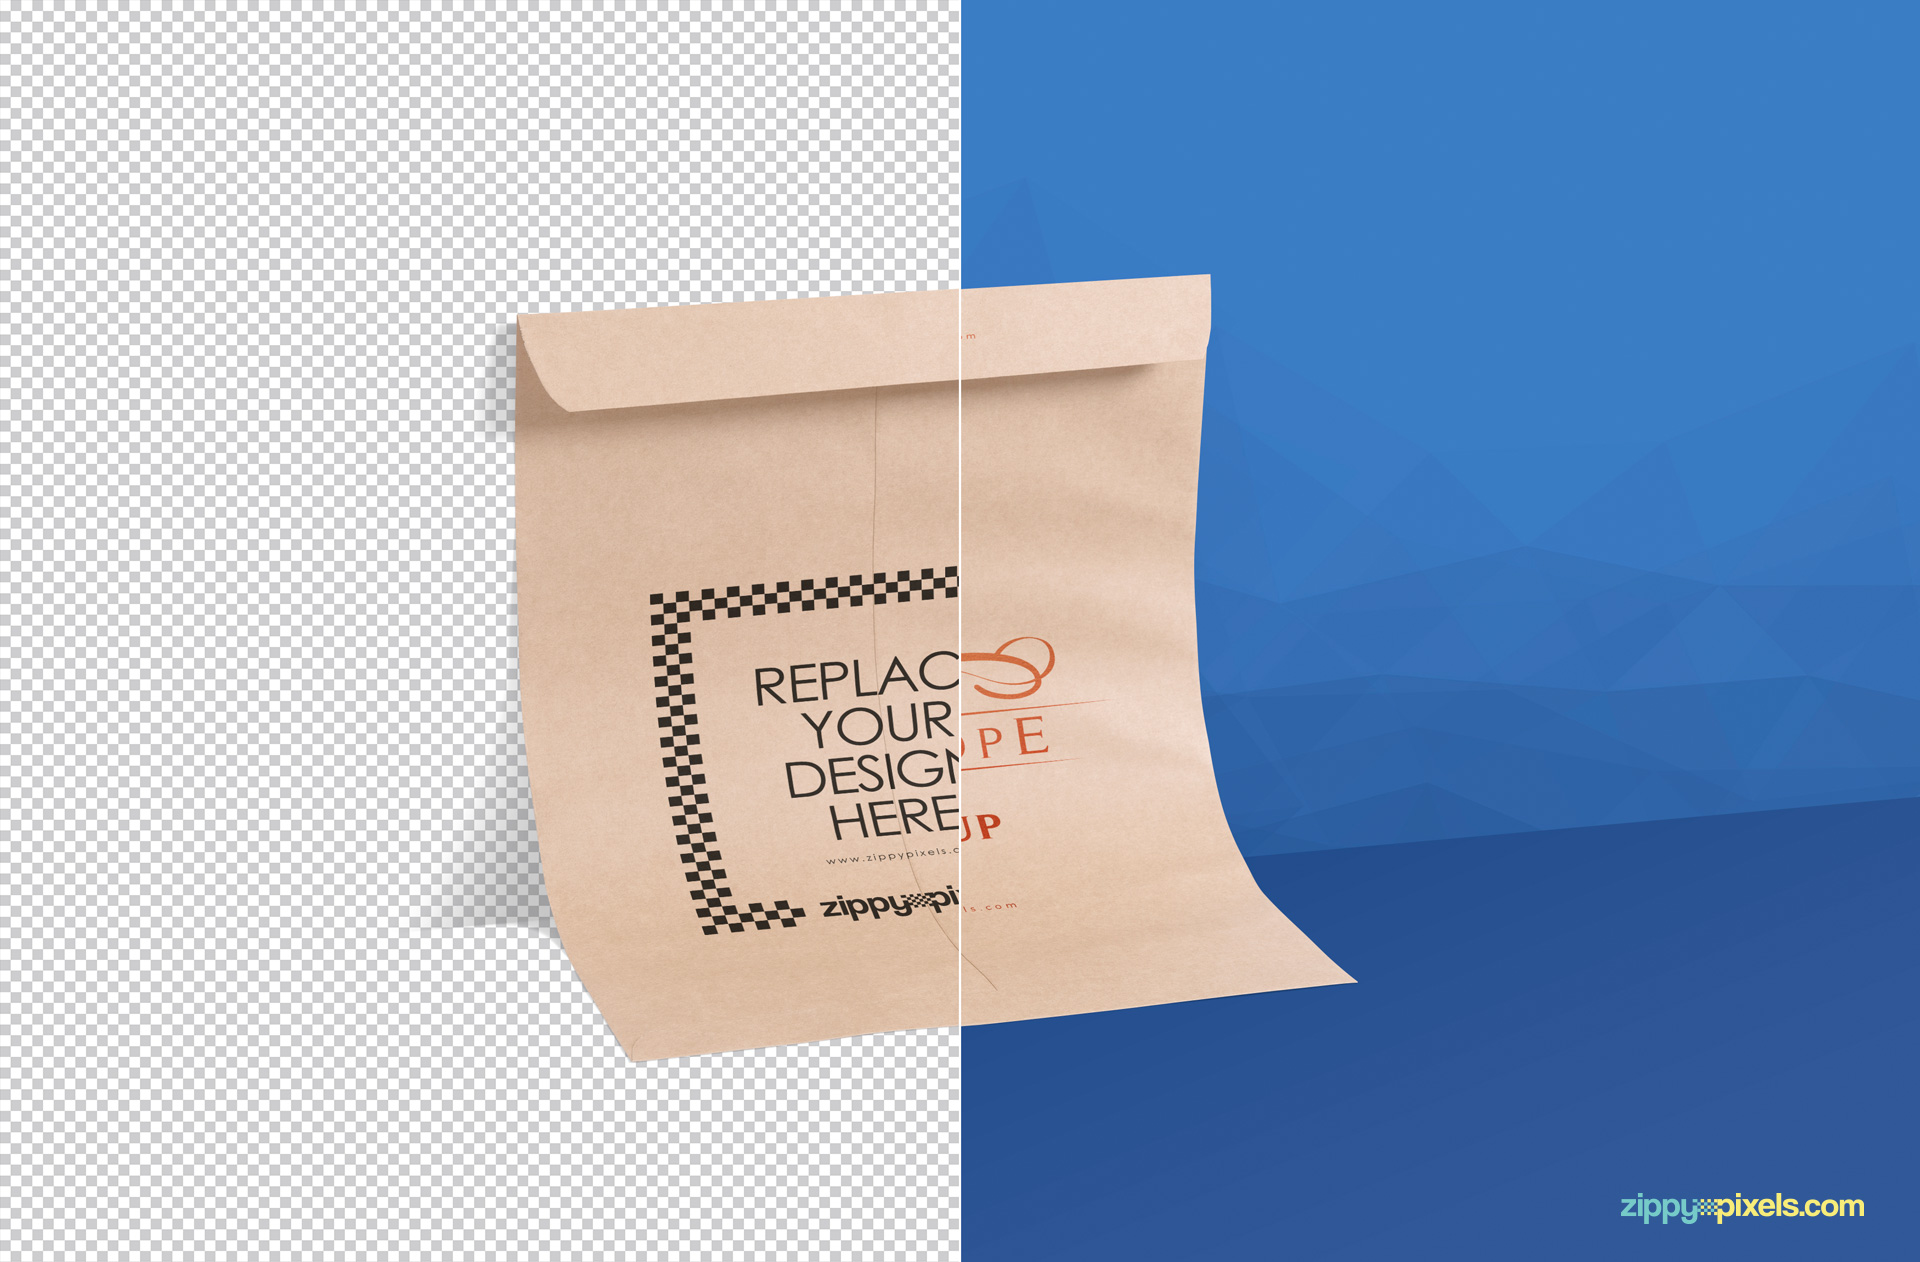 insert design in fully customizable envelope mockup psd